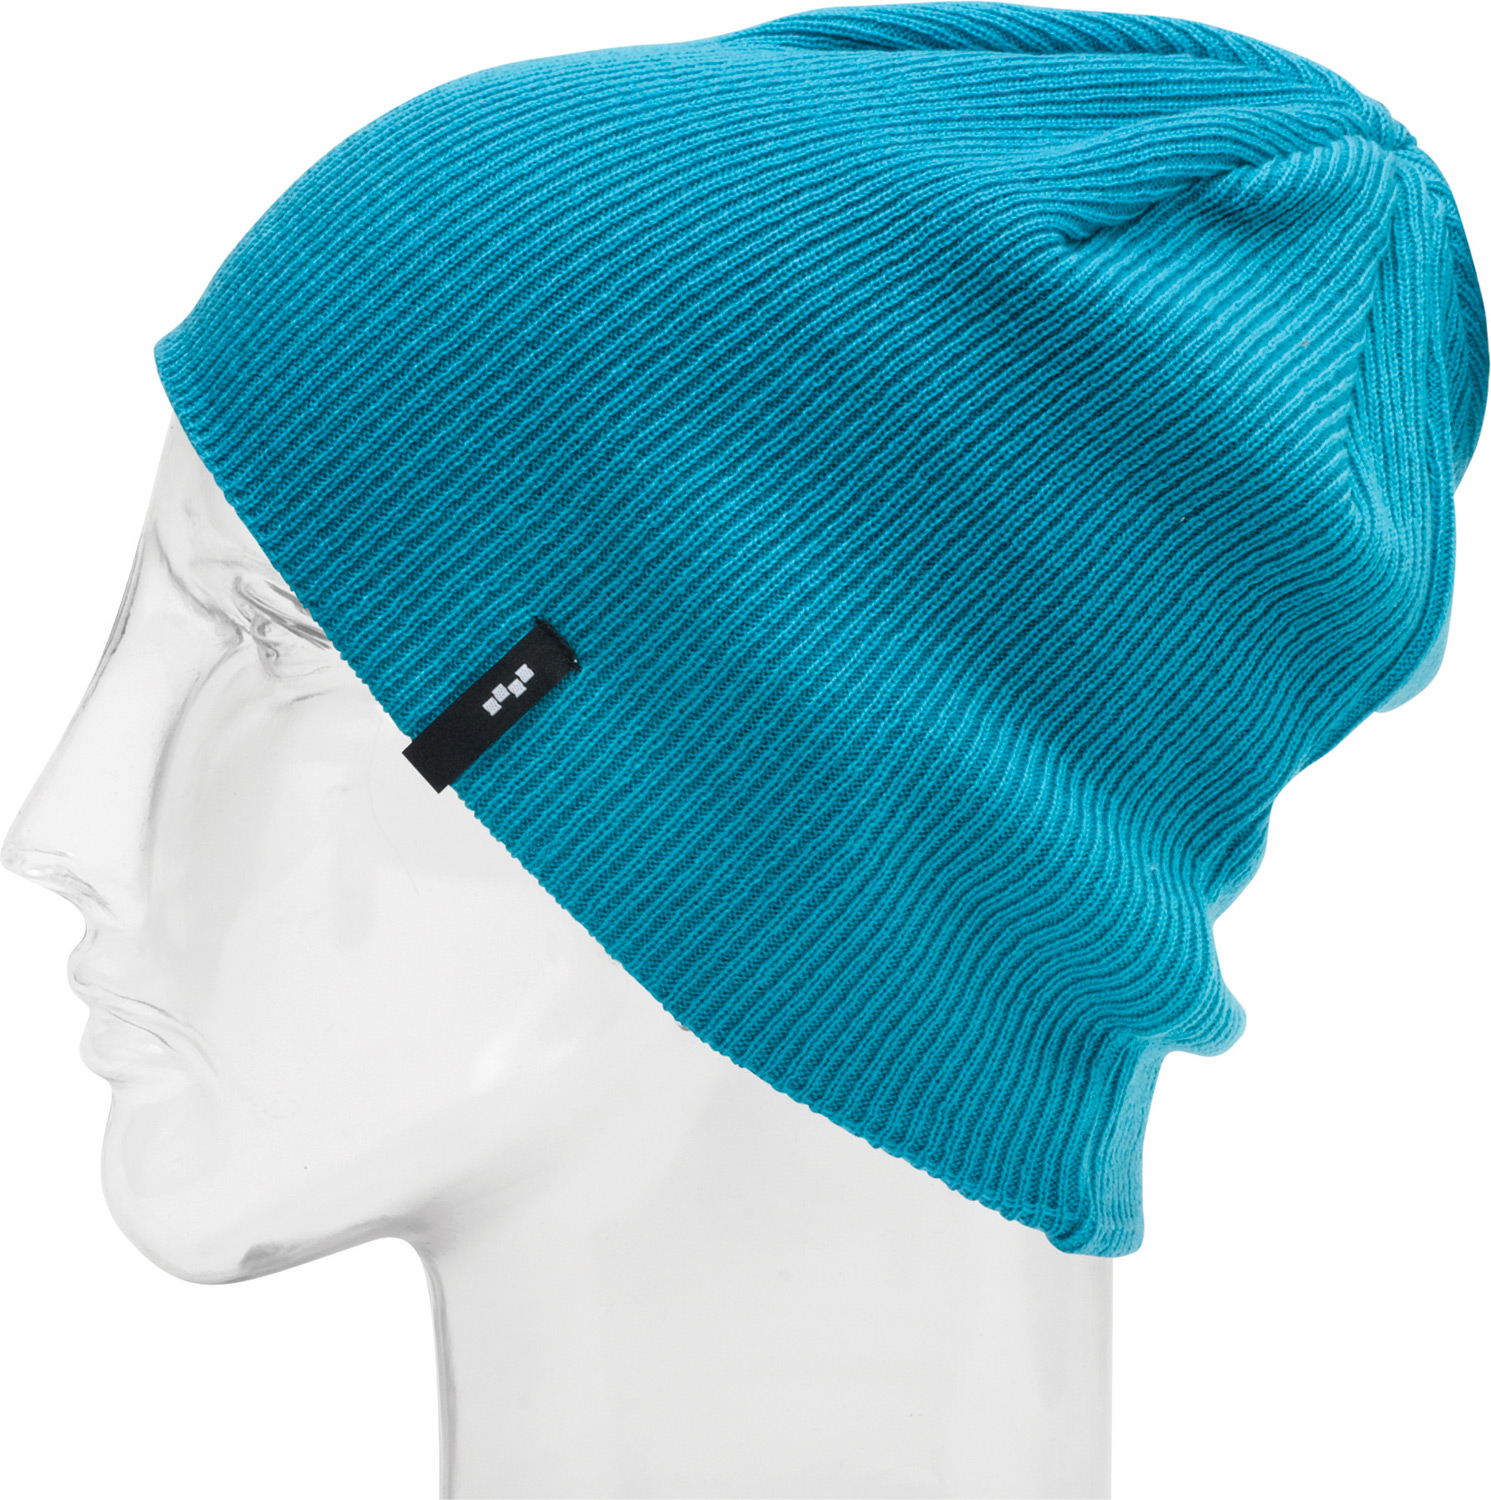 Snowboard Key Features of the Foursquare Dome Beanie: 100% Acrylic Classic Style Machine Knit Ribbed - $15.95